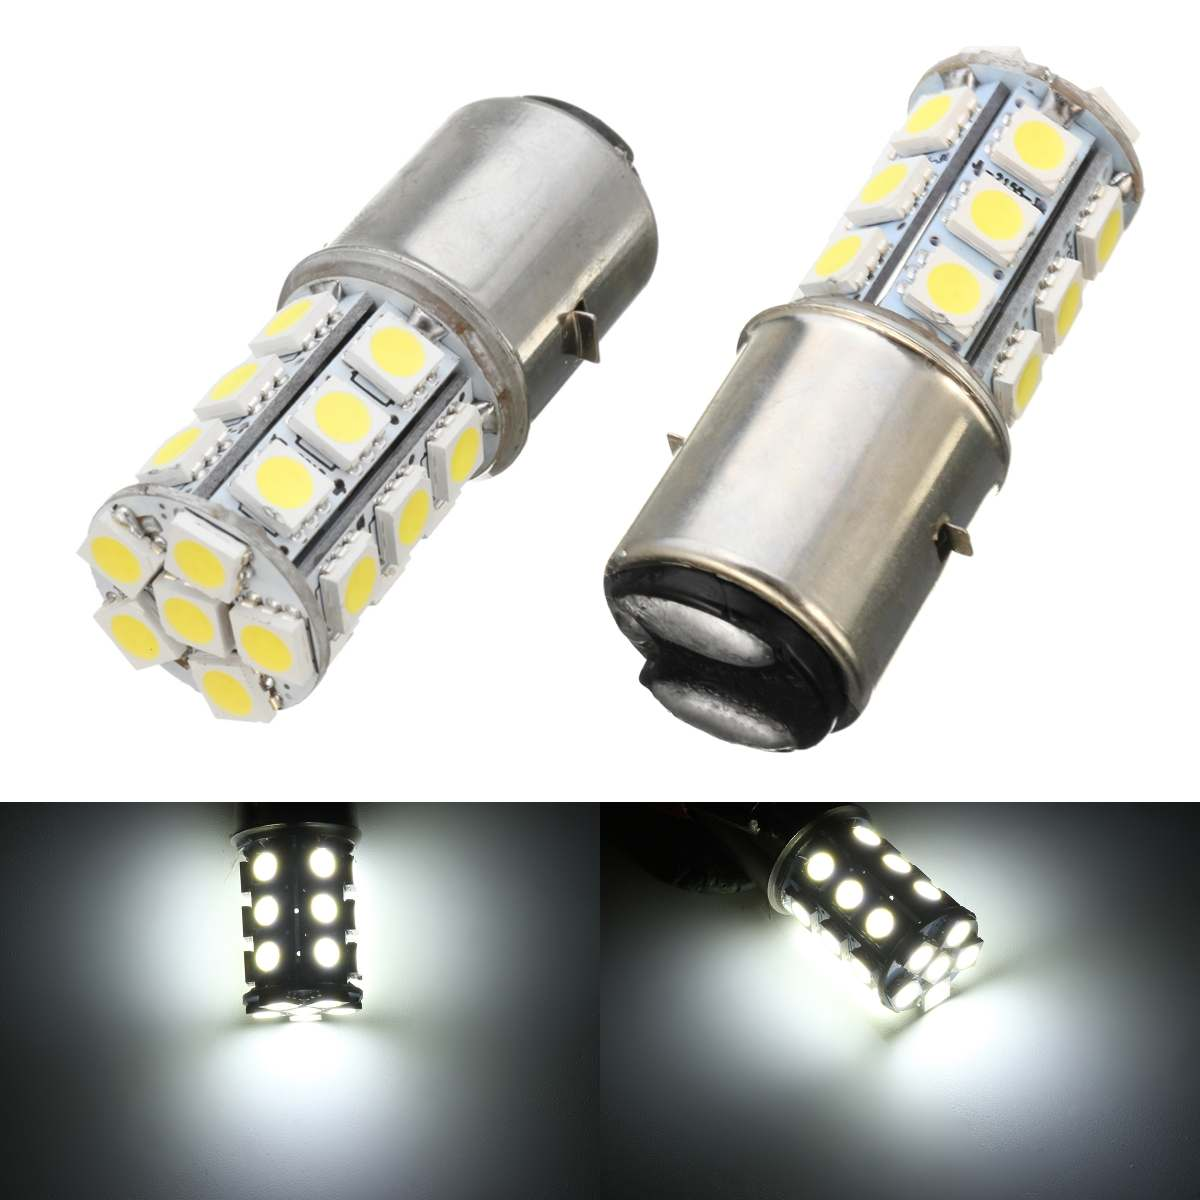 1pc BA20D H6 24 LED SMD Motorcycle Moped ATV PIT Headlight Bulb 6000K 12V Motorbike Passing Light